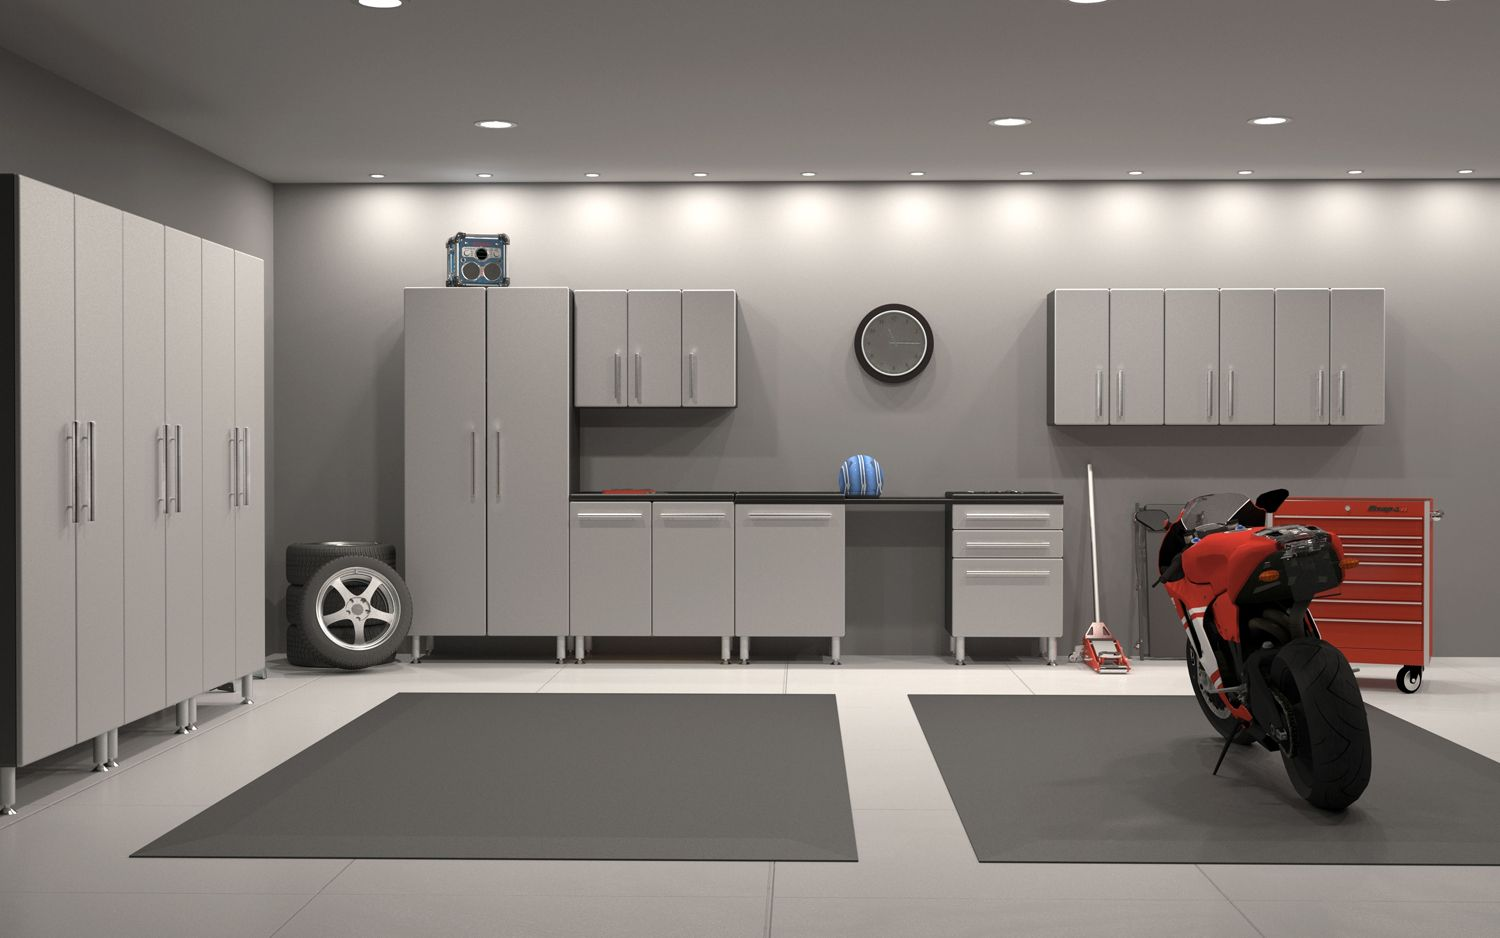 cool garage ideas elegant garage designs - Garage Design Ideas Pictures